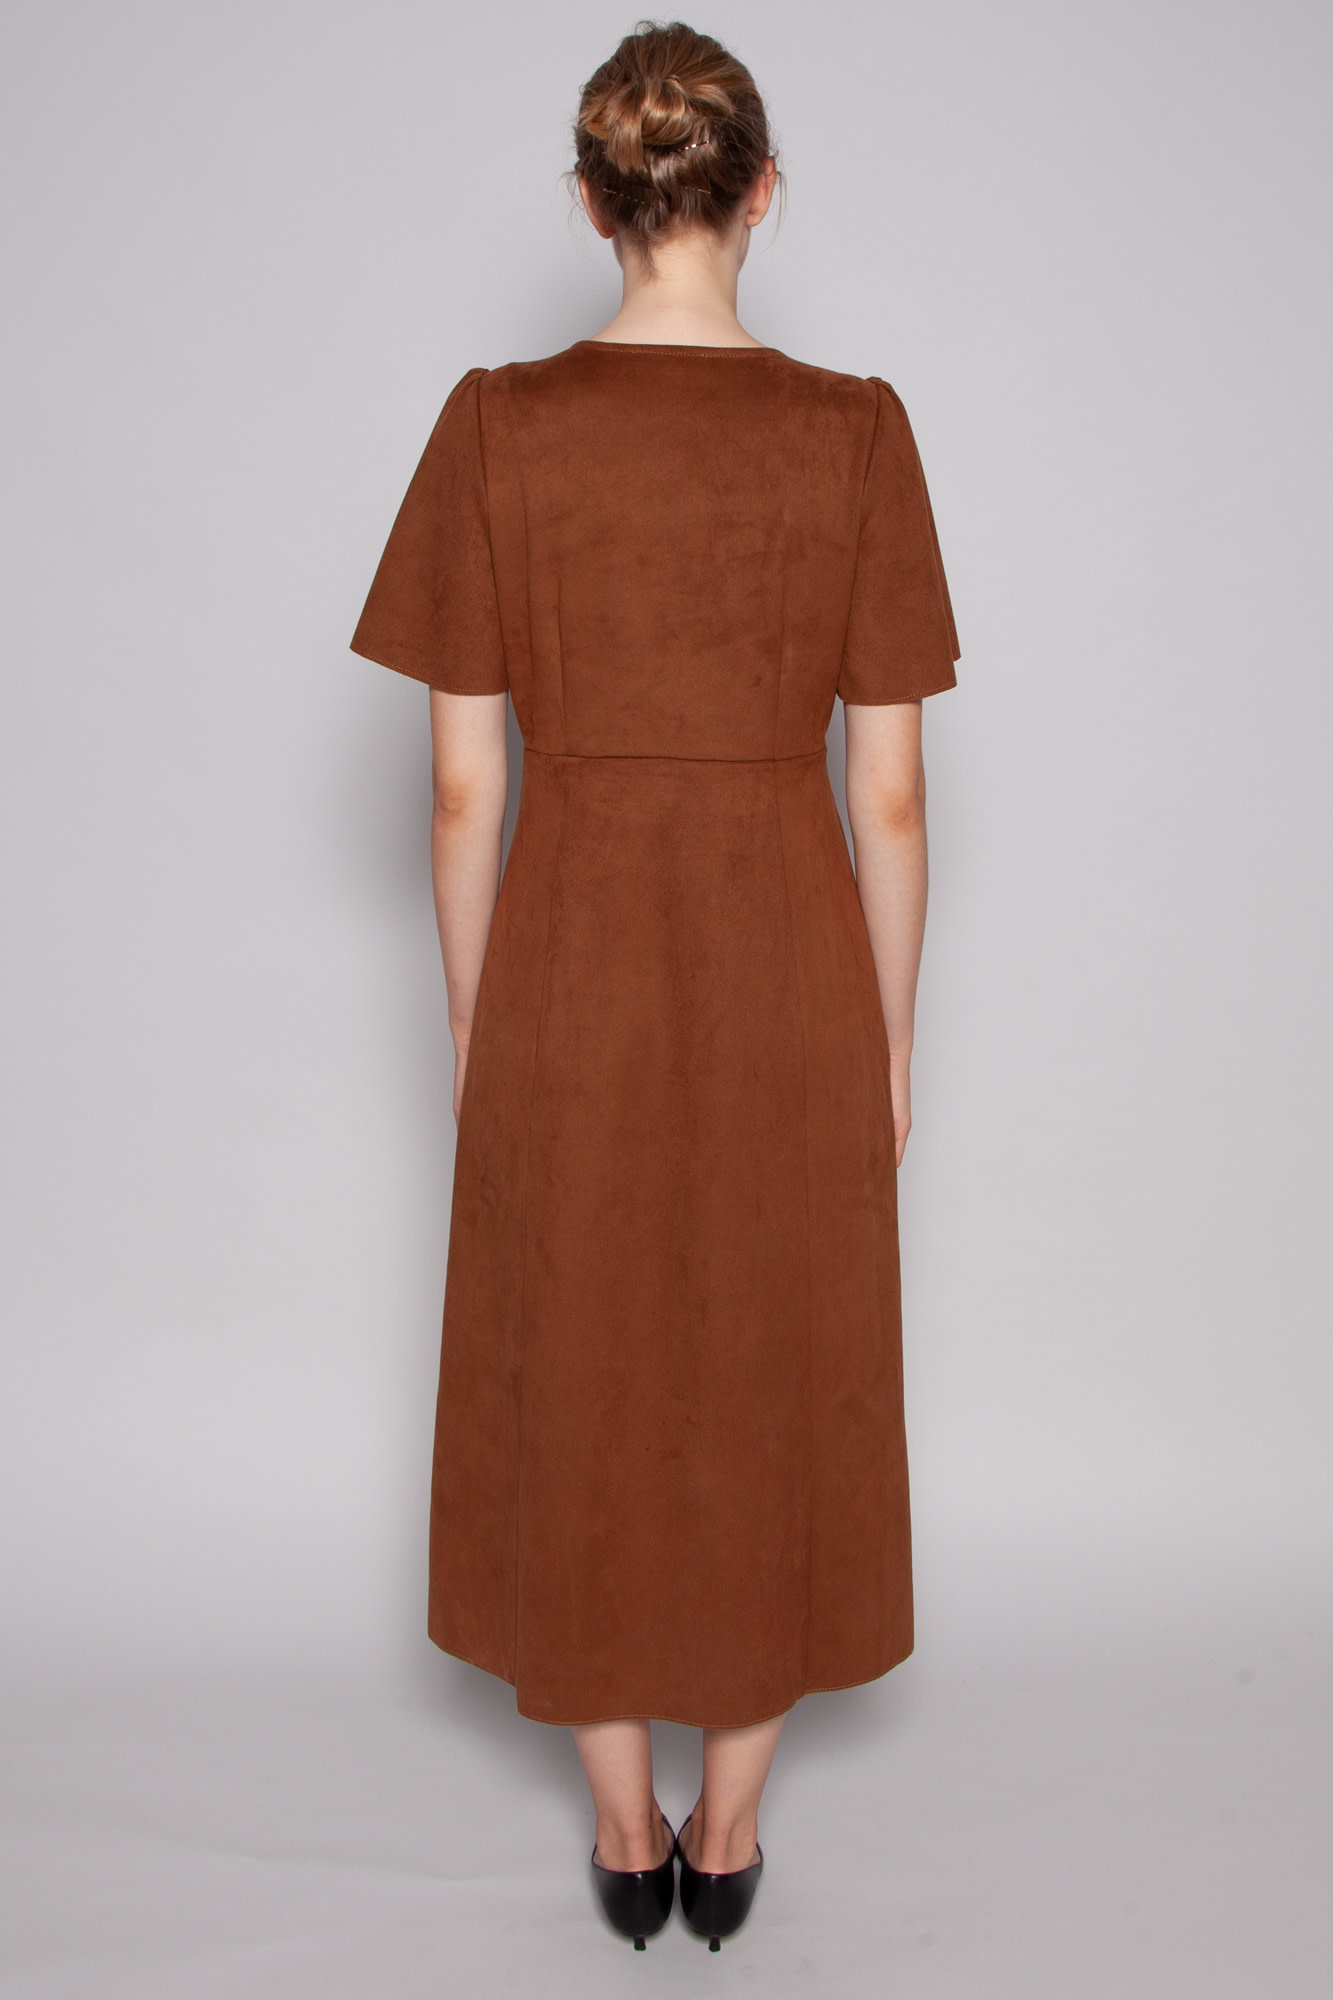 Hide BROWN SUEDE DRESS WITH BUTTONS  - NEW